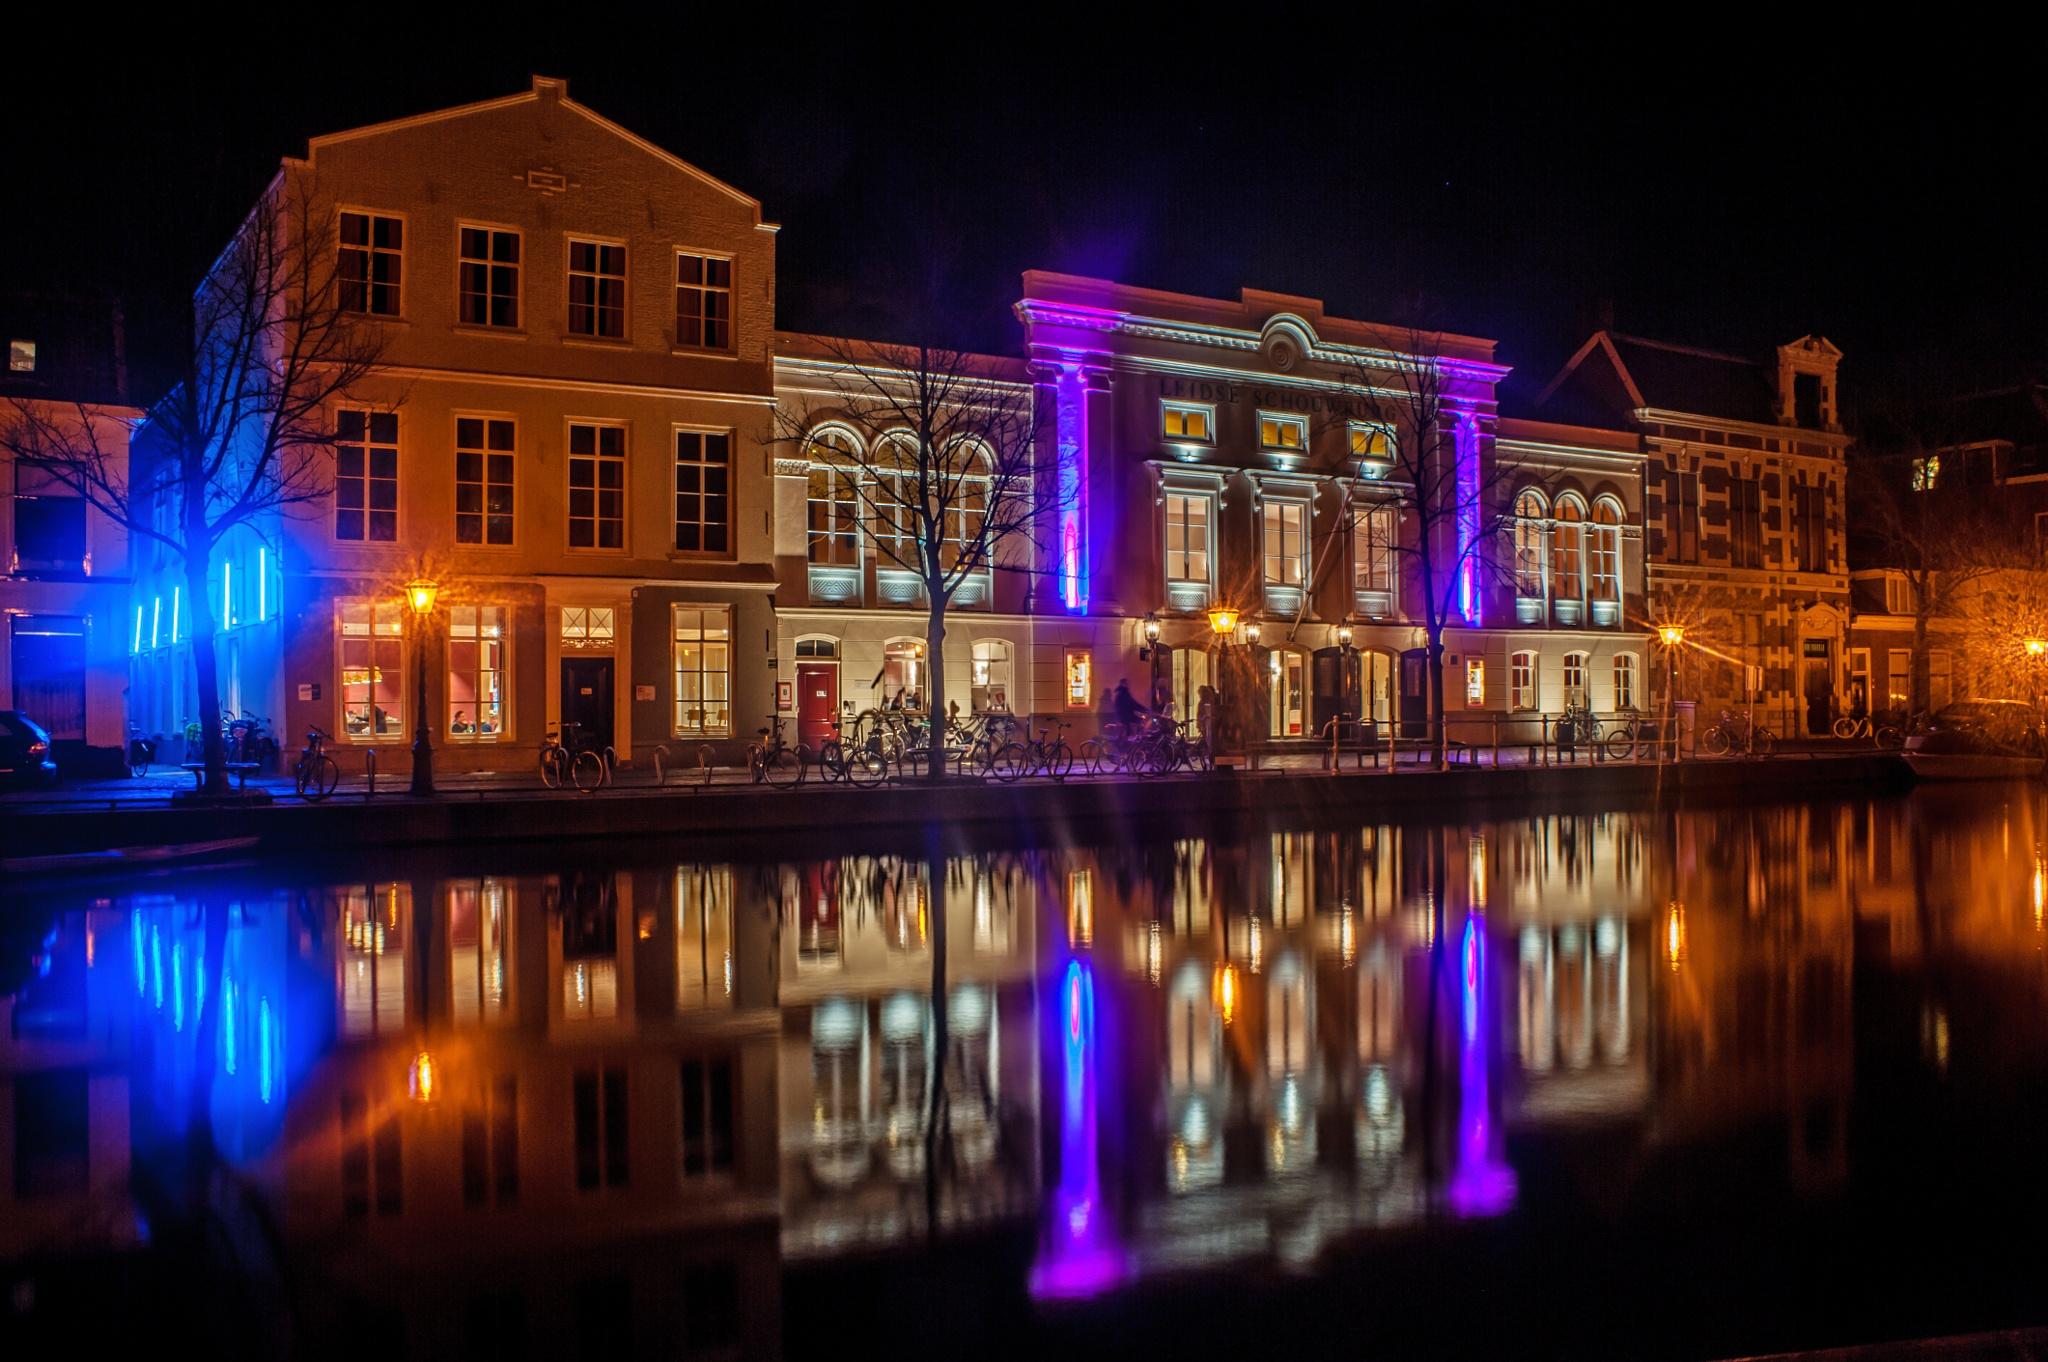 City theater Leiden by Paul Hoogeveen Photography